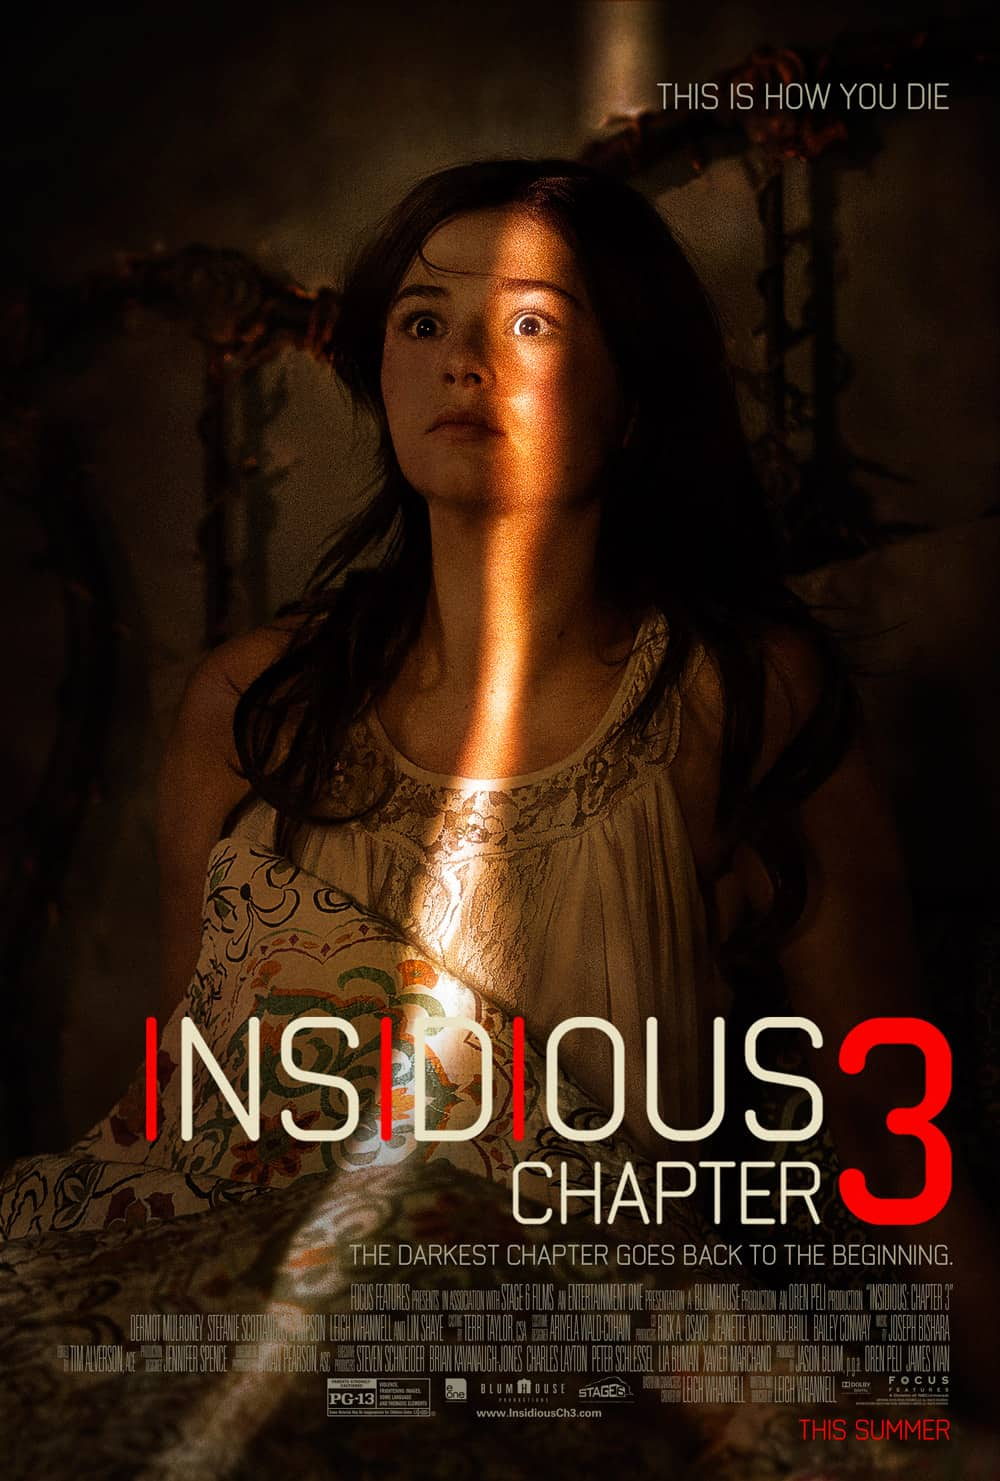 Insidious Chapter 3 poster - Insidious Chapter 3 - Official Poster Premiere